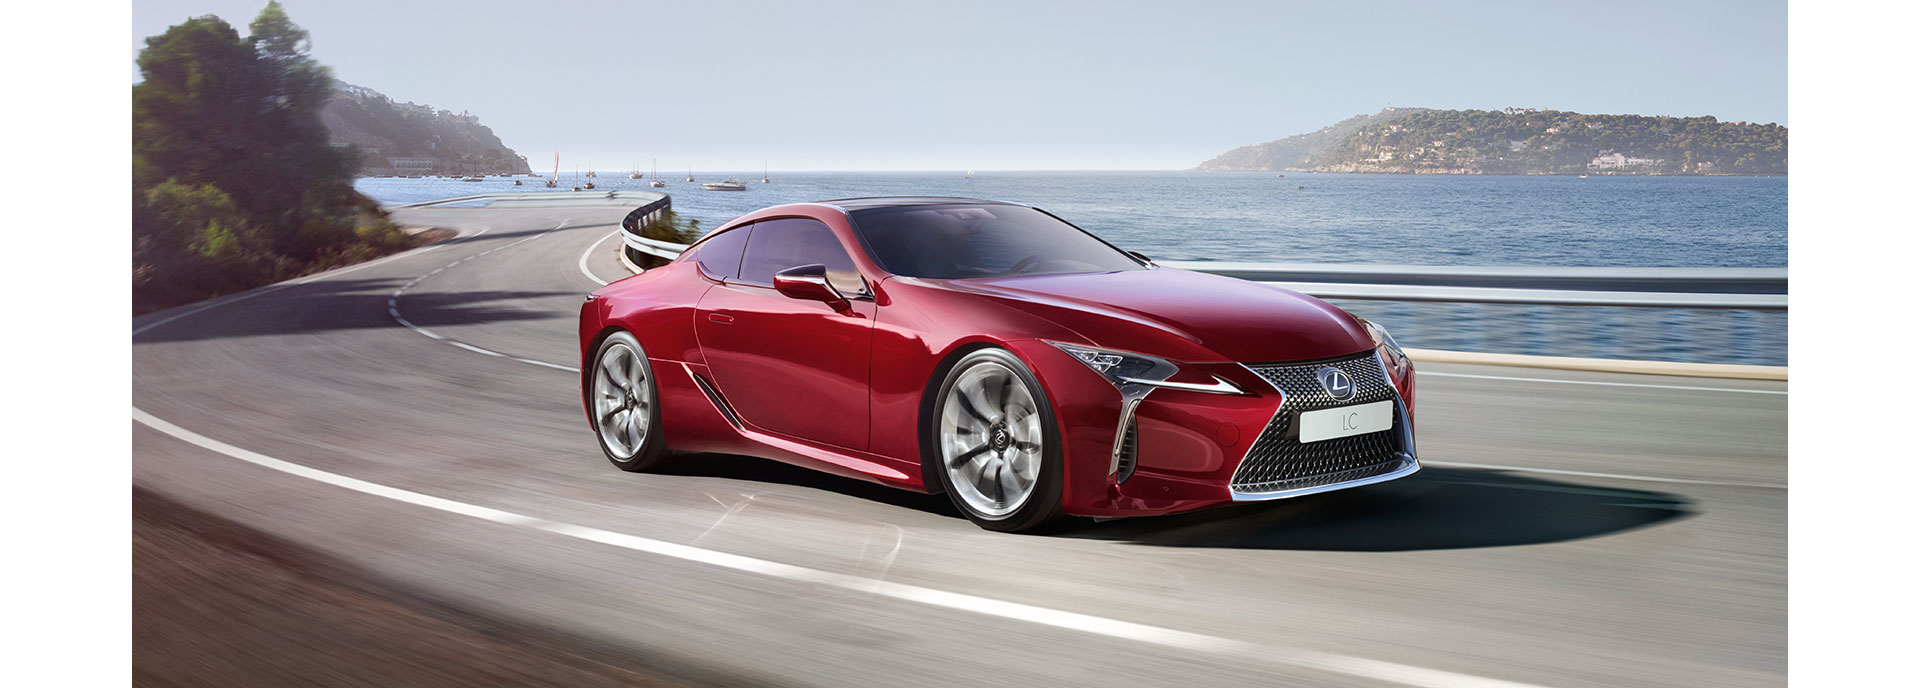 2017 Lexus LC 500 Driving Dynamics